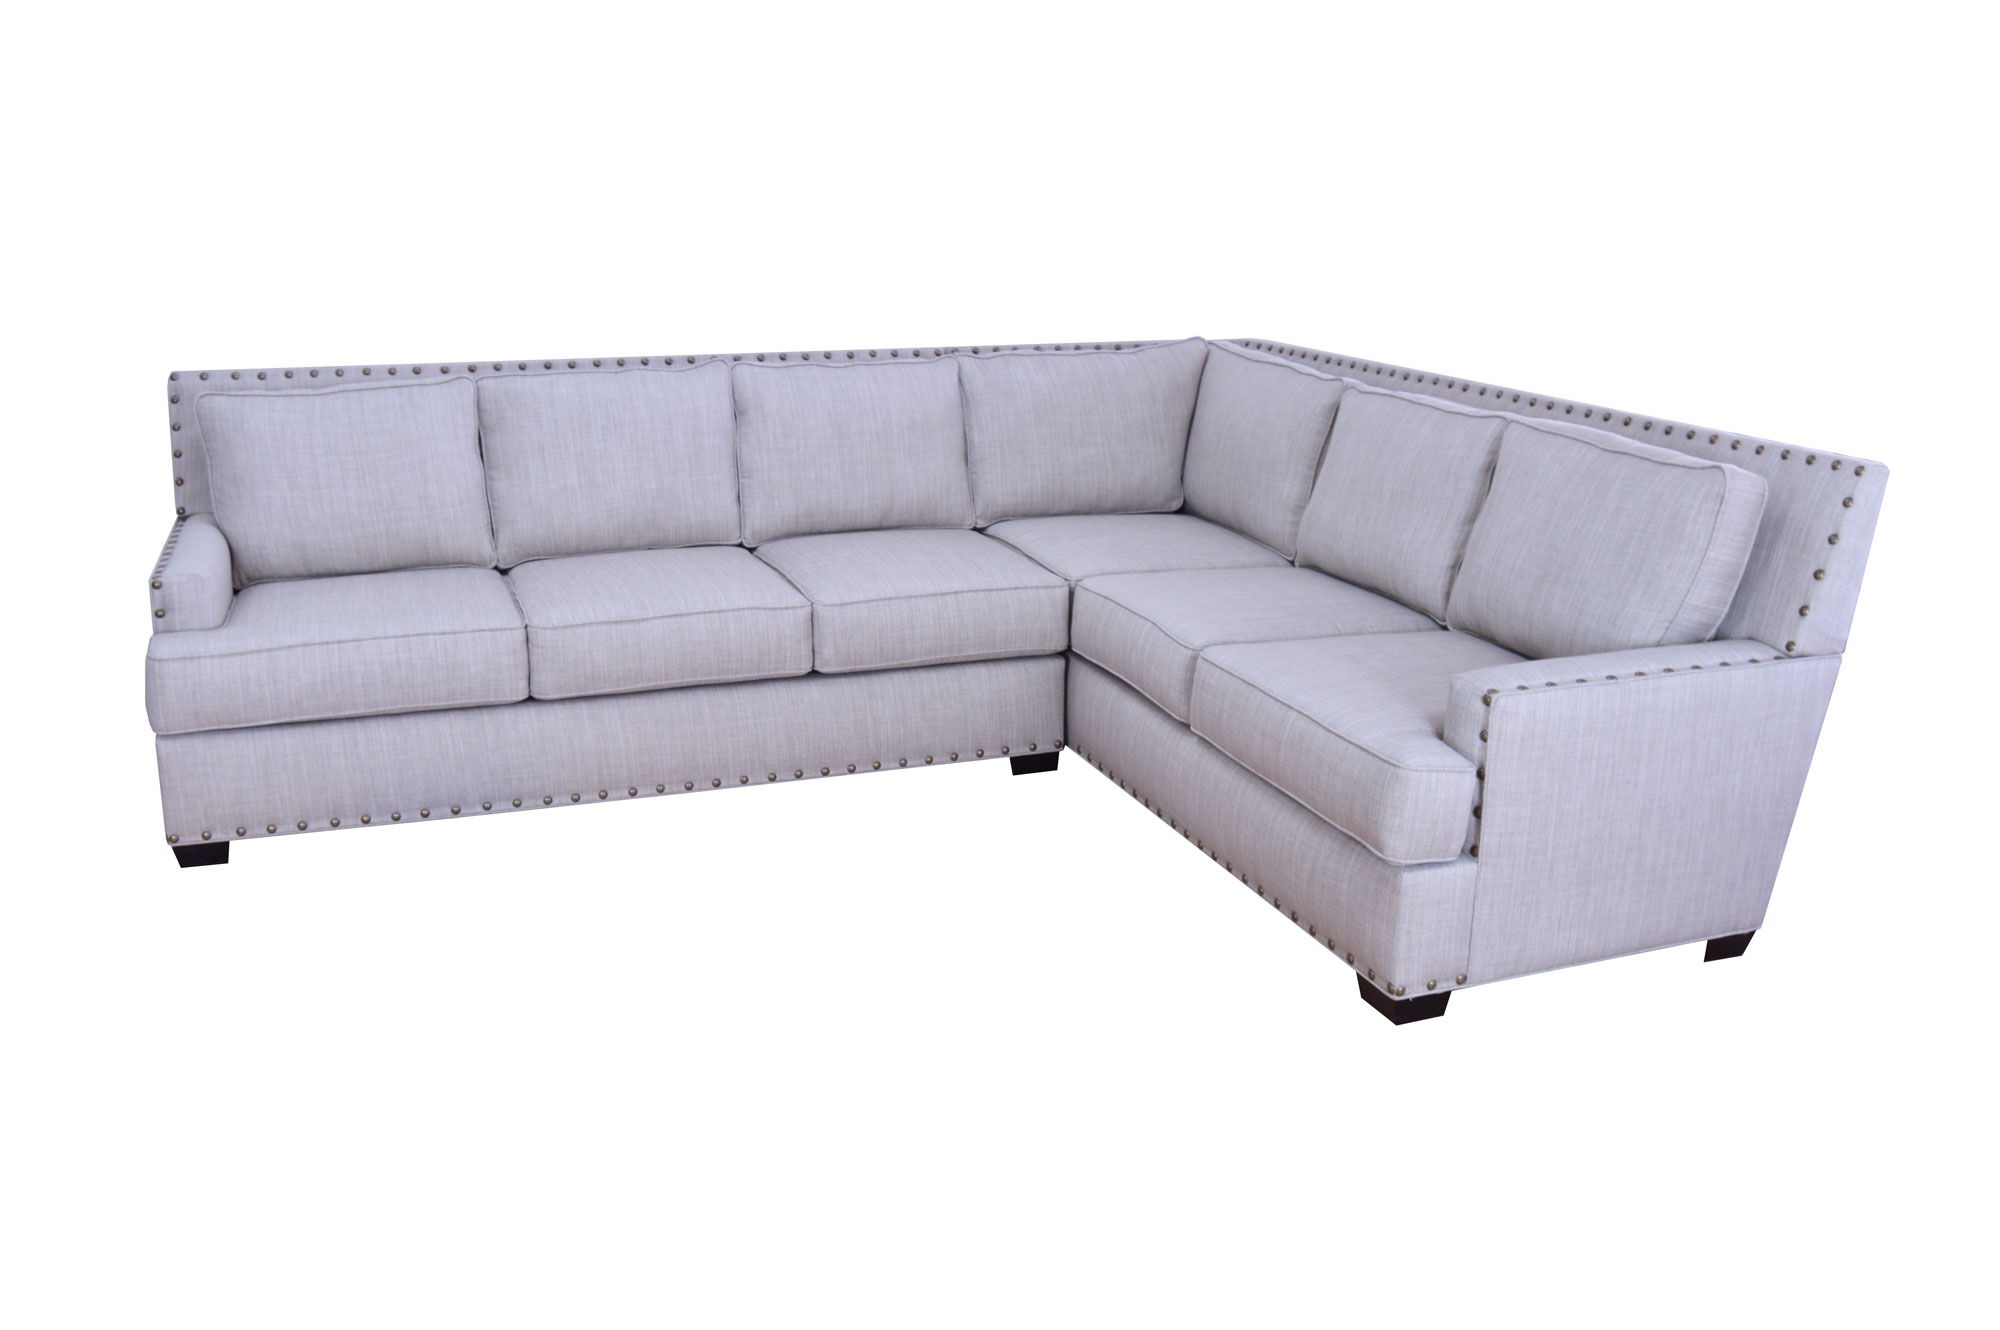 sofas for less l shaped sofa set in india beverly hills custom 4